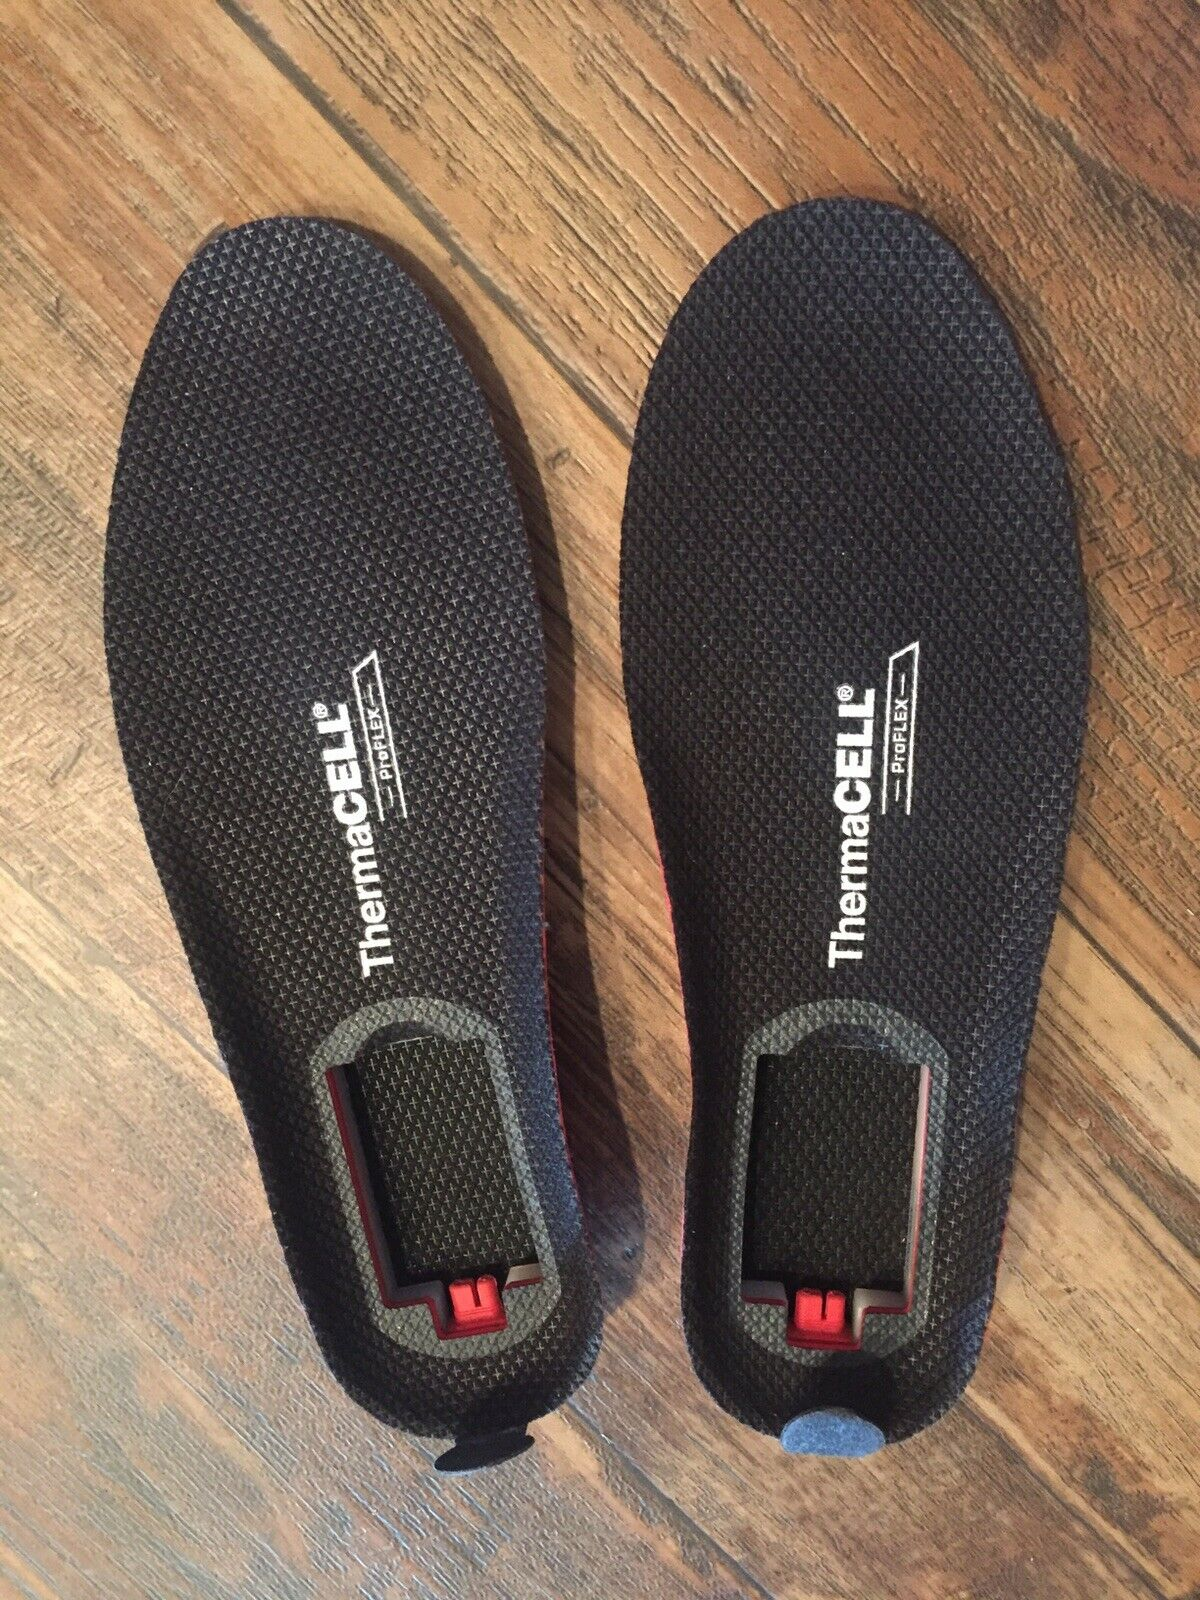 Thermacell ProFlex MEDIUM Insoles ONLY